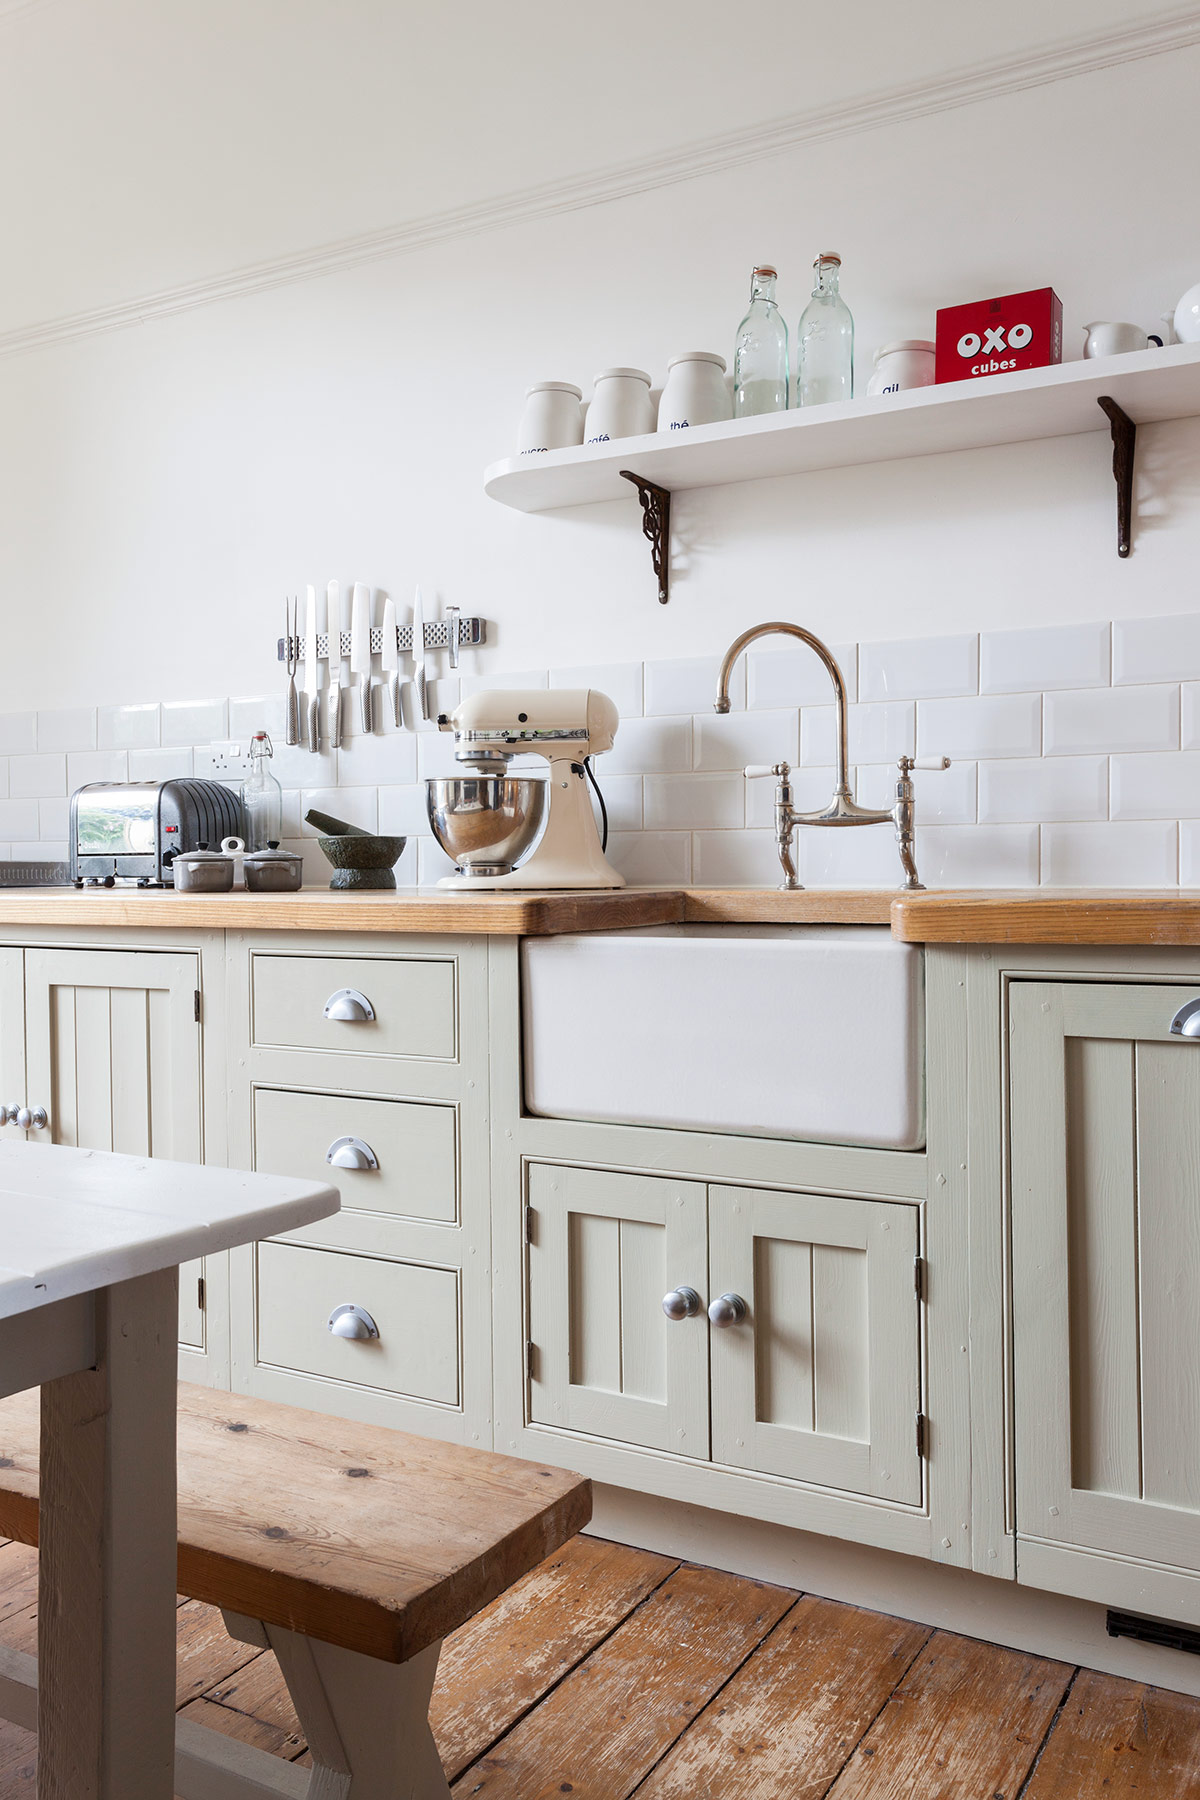 The Top Kitchen Trends Of 2018 According To Houzz Real Simple